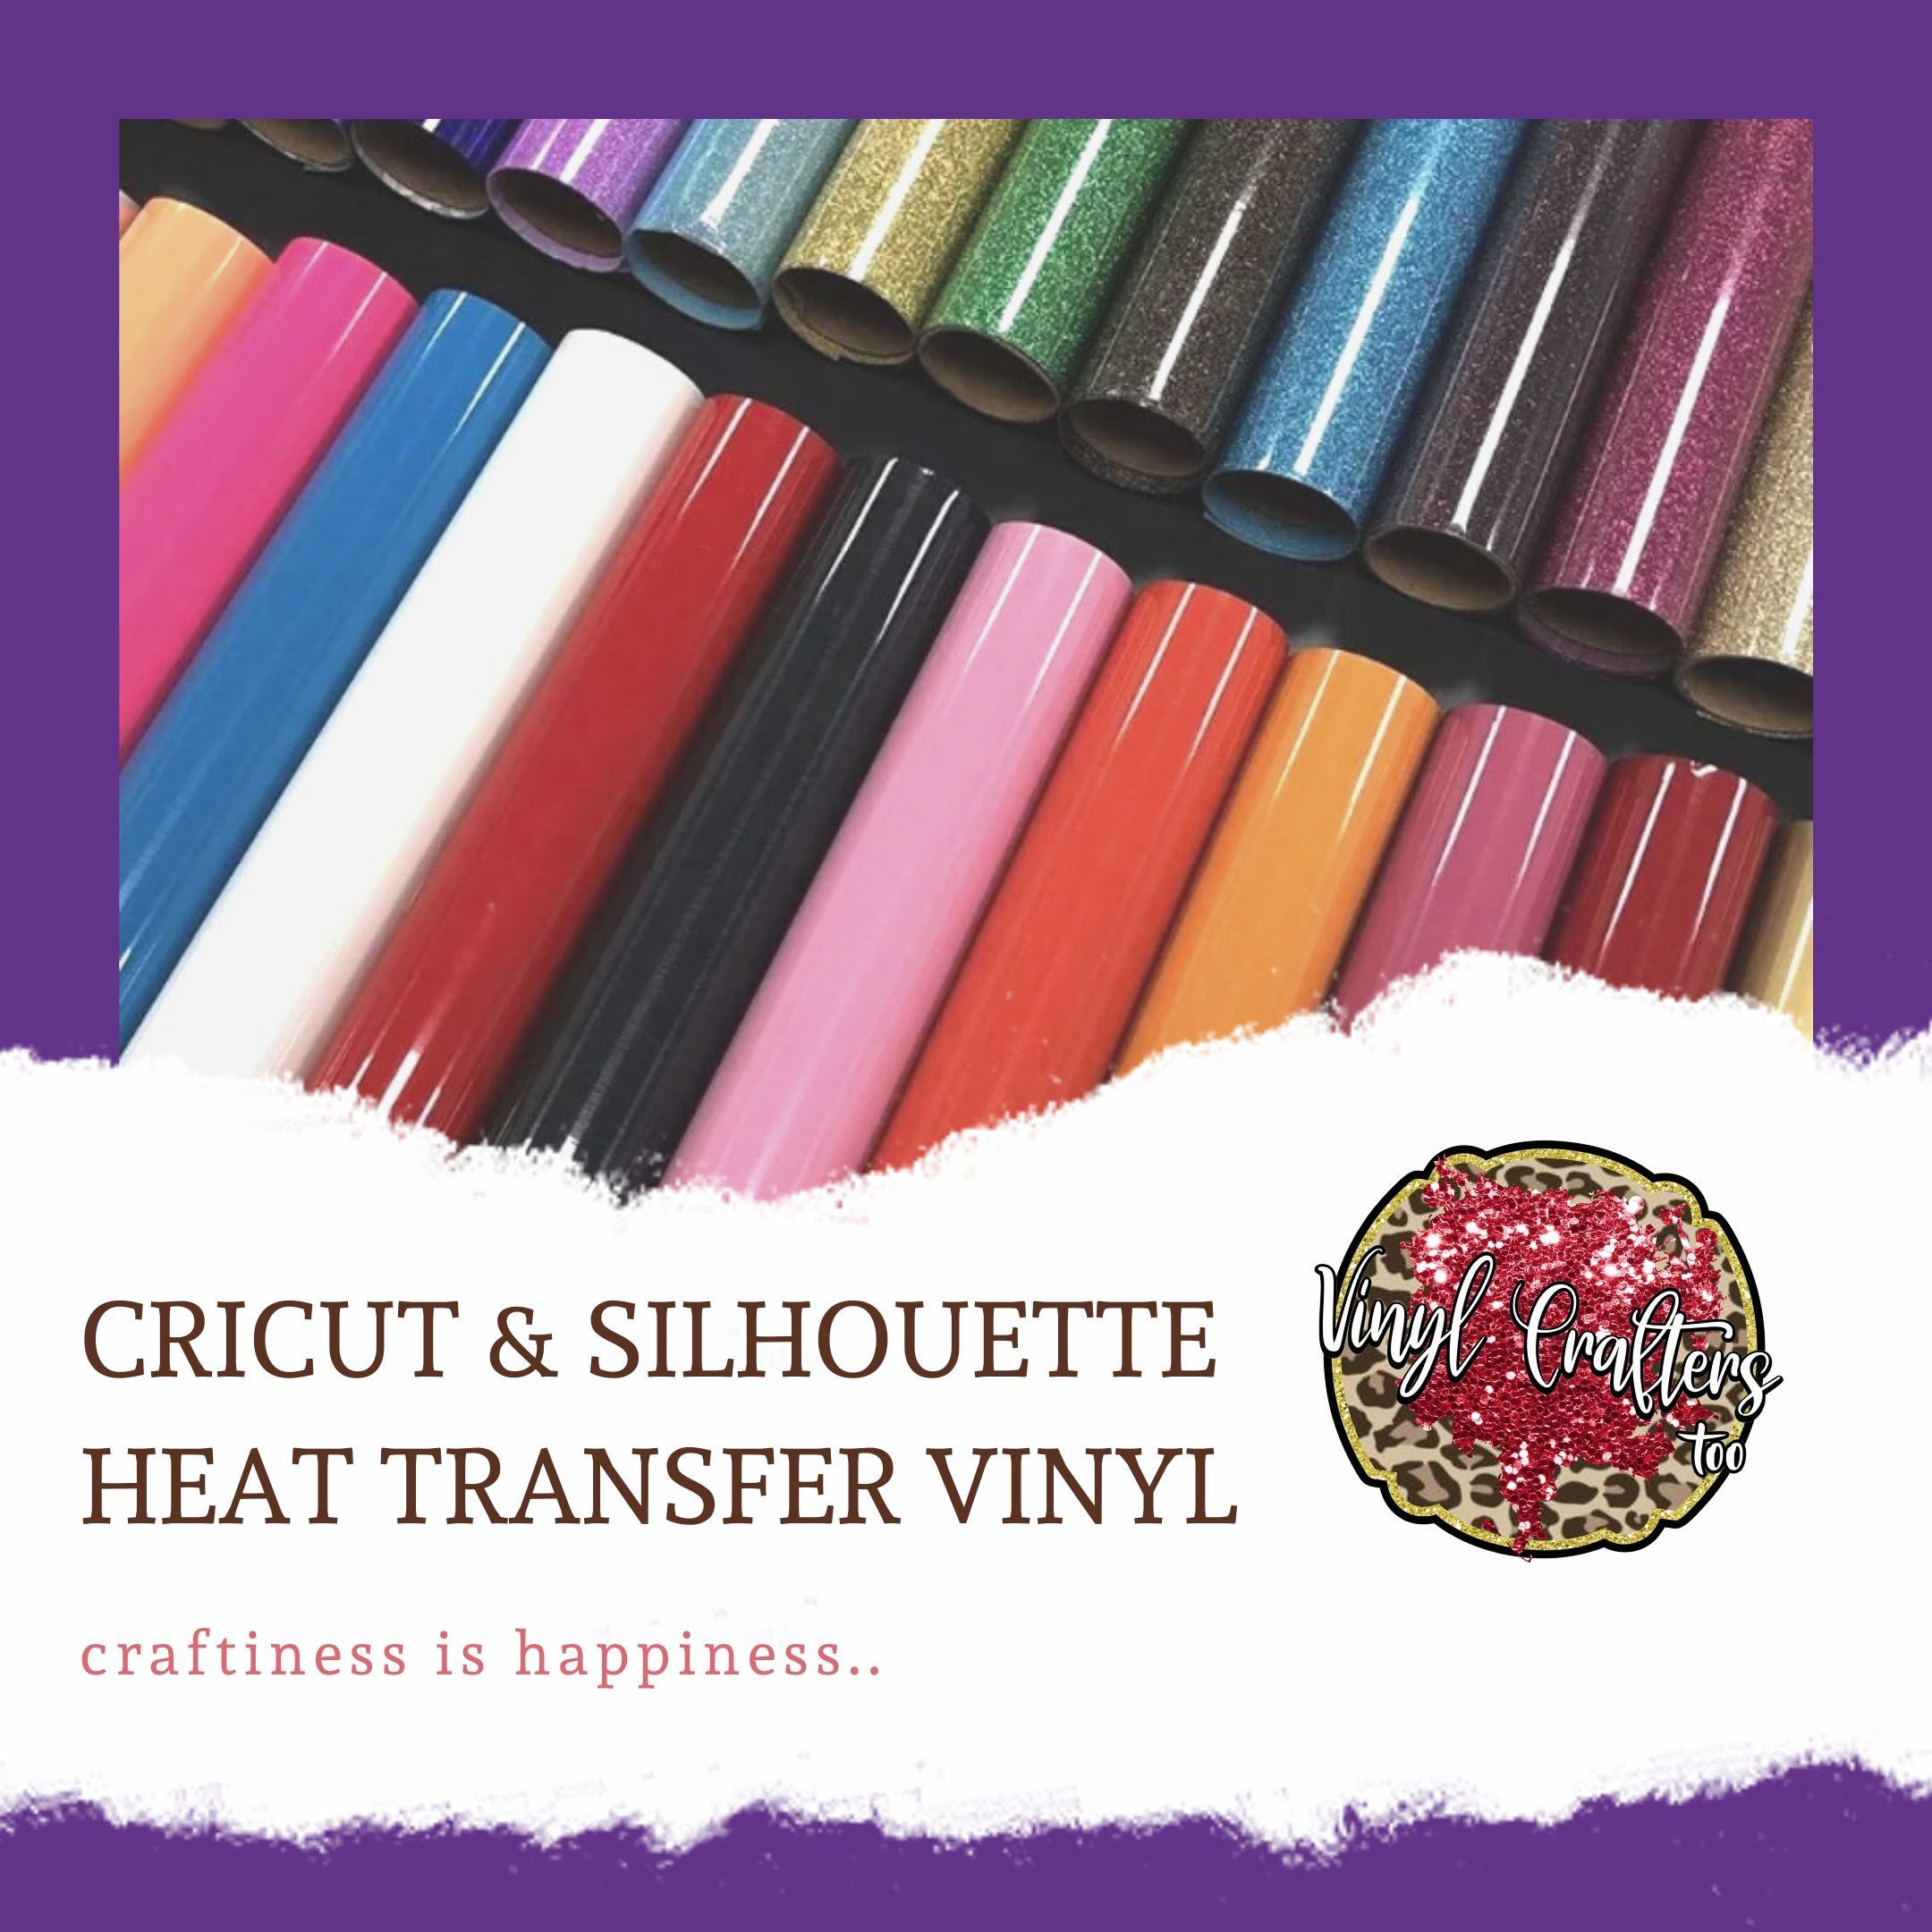 Glitter Heat Transfer Vinyl Bundle Embroidery Glitter Htv Glitter Cricut Glitter Vinyl Glitter Vinyl Sheets Iron On Silhouette Cameo In 2020 Glitter Heat Transfer Vinyl Glitter Vinyl Heat Transfer Vinyl